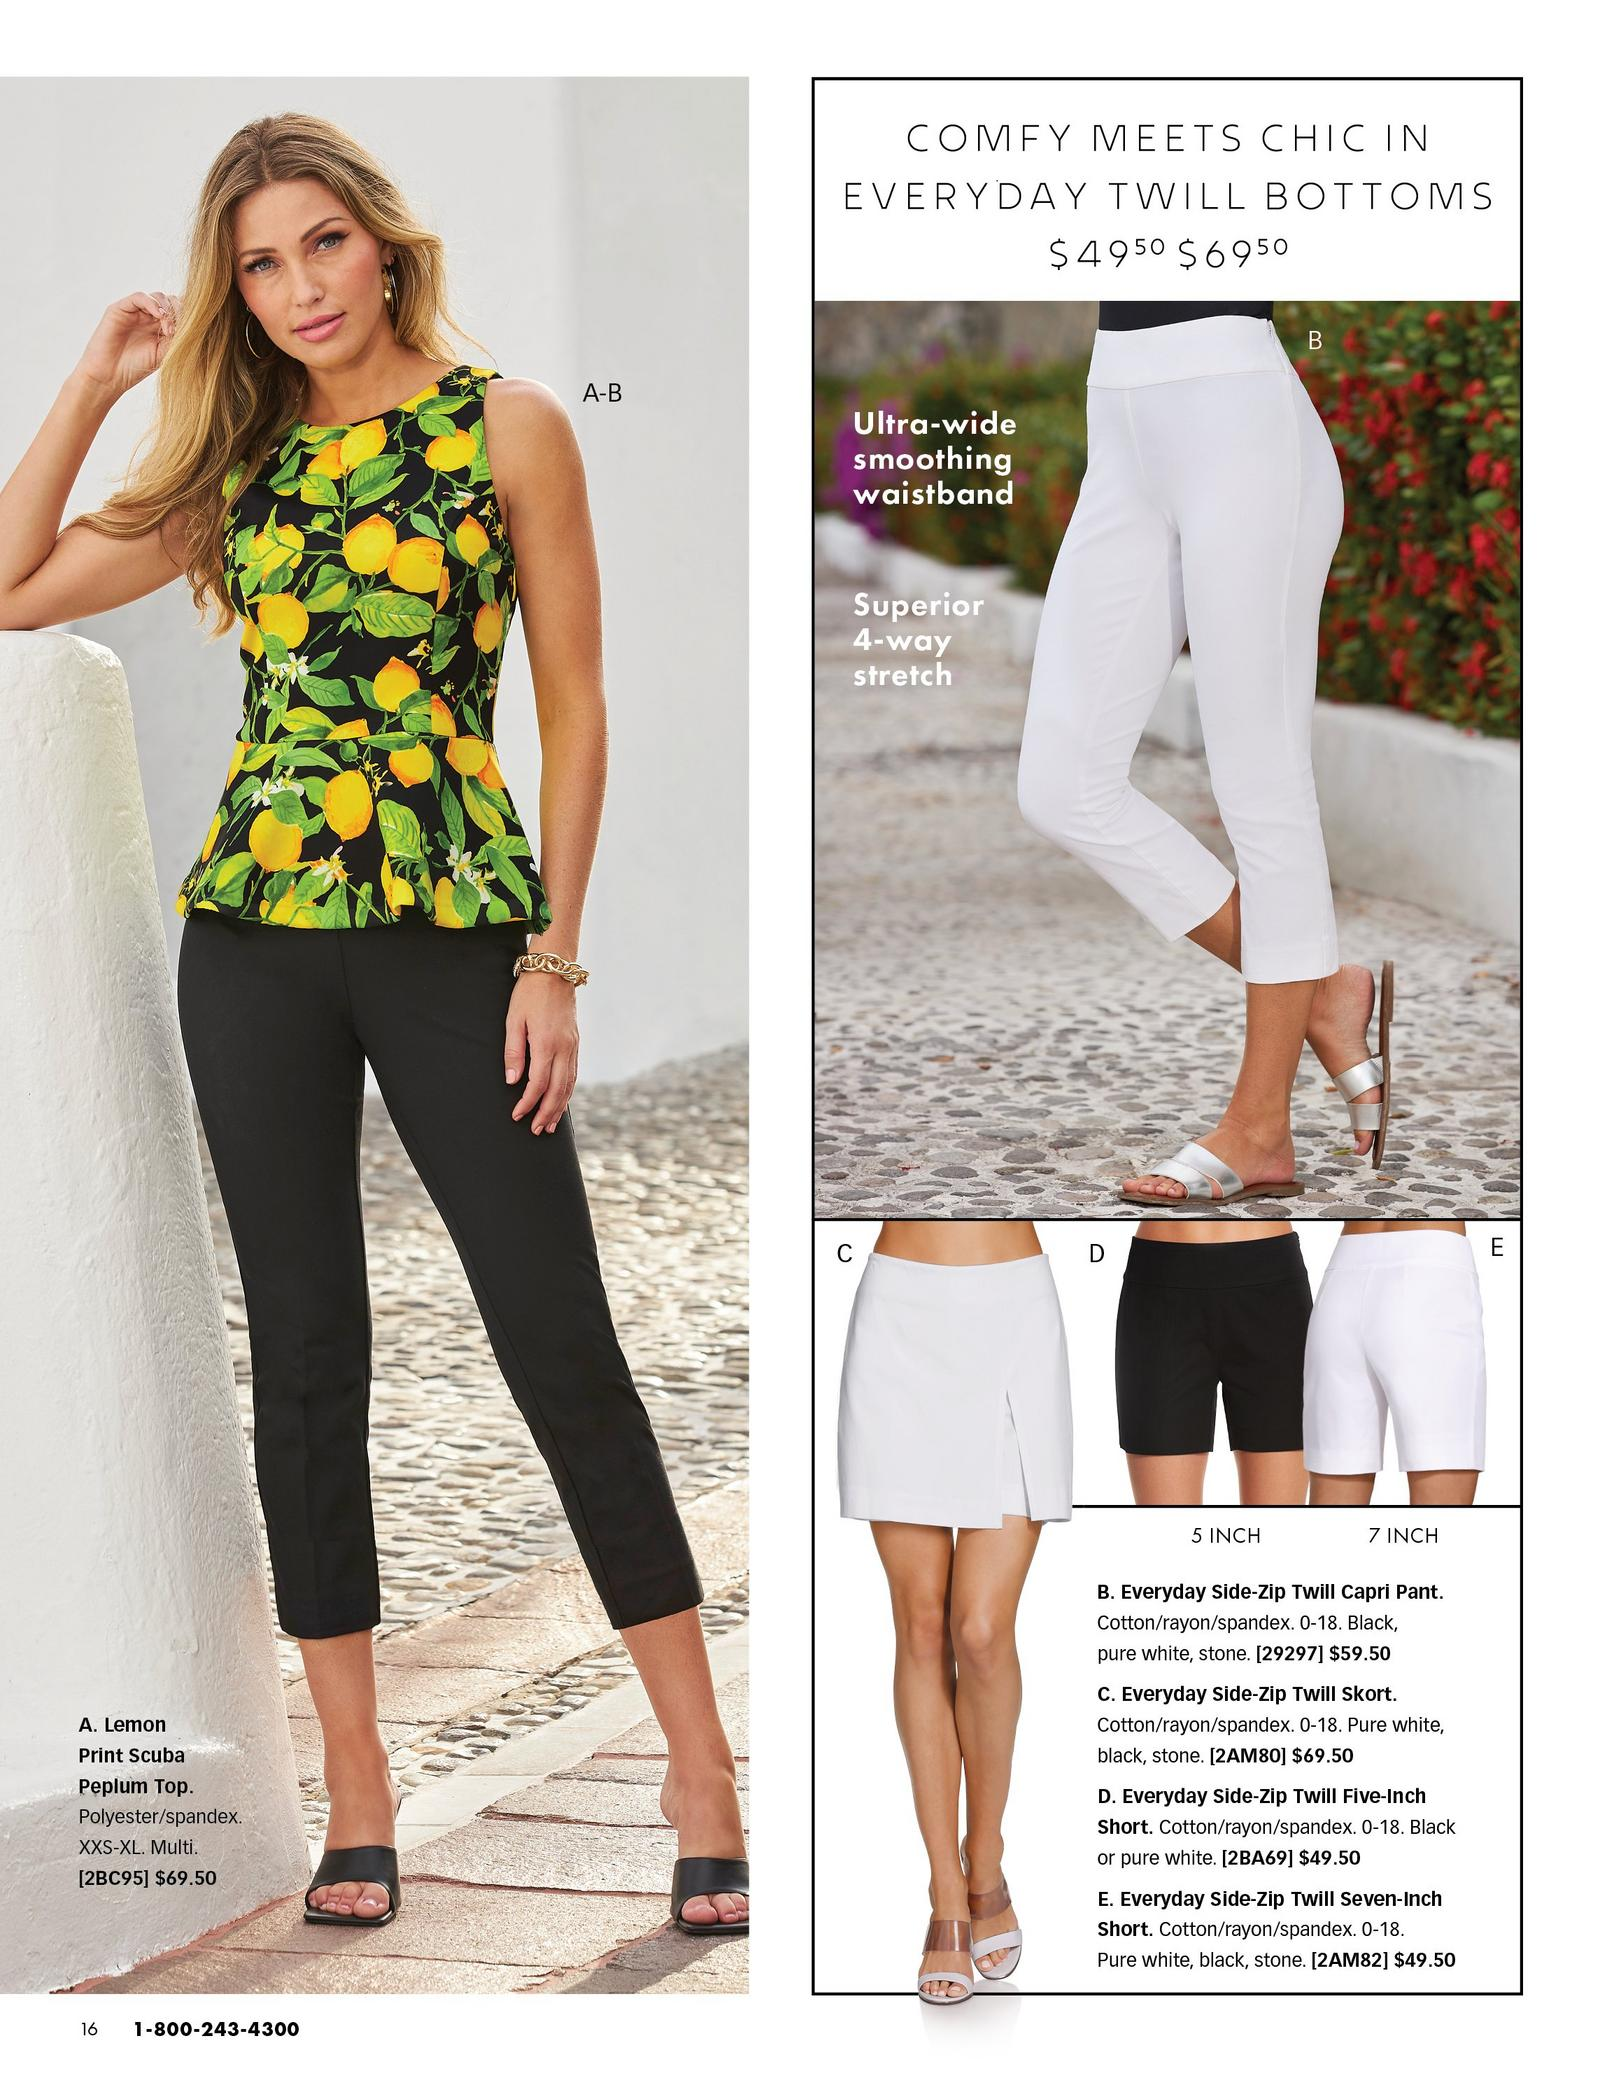 left model wearing a lemon print sleeveless peplum top, black capri pants, and black heels. top right model wearing white capris and silver metallic sandals. bottom right square shows a white skort, black 5-inch shorts, and white 7-inch shorts.